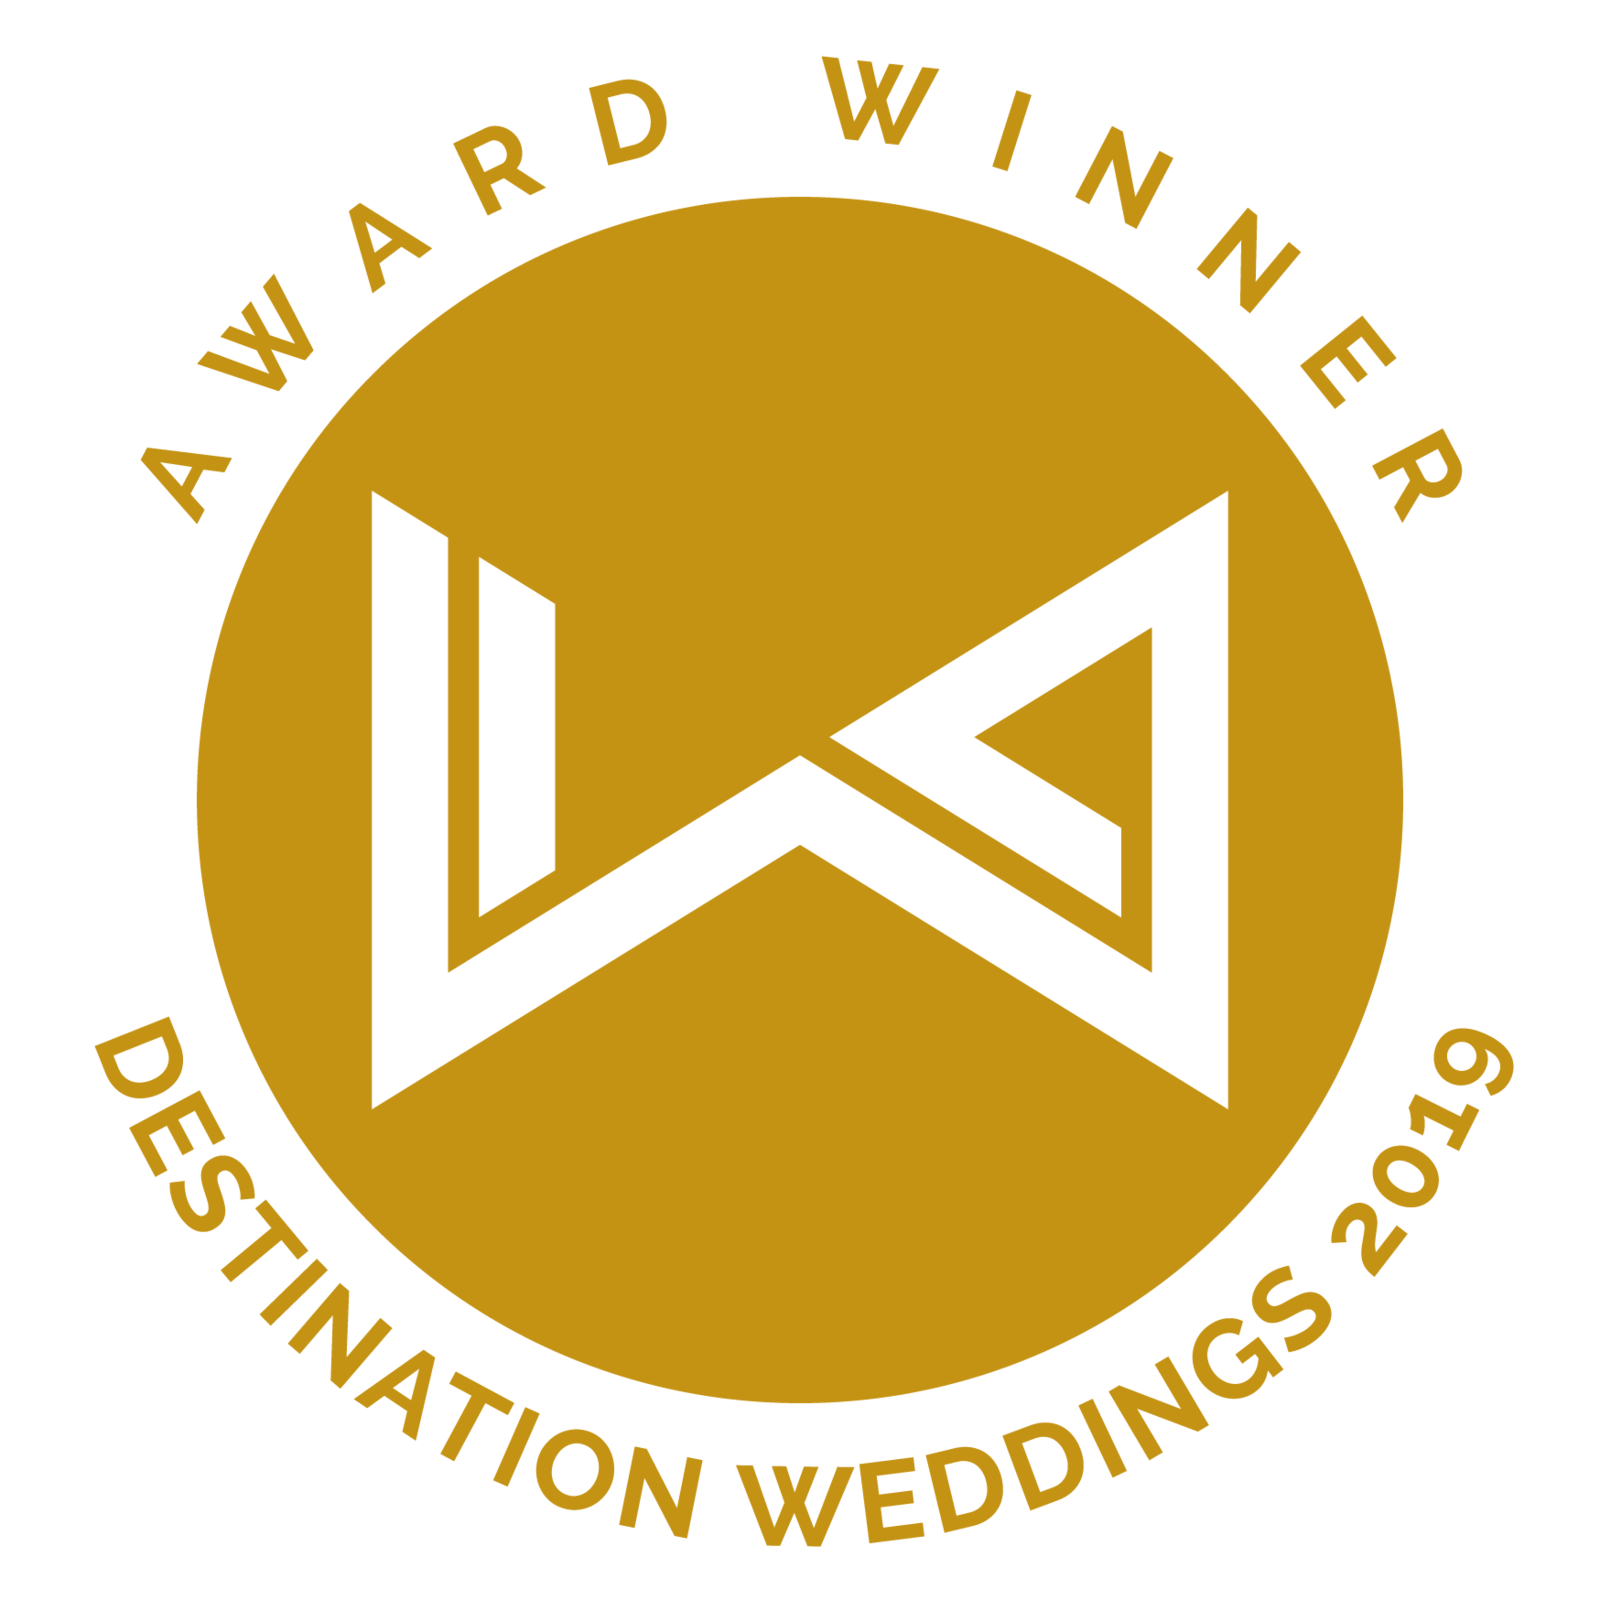 WIA award logo opaque_Destination Weddings 2019_BG transparent_RGB_030119